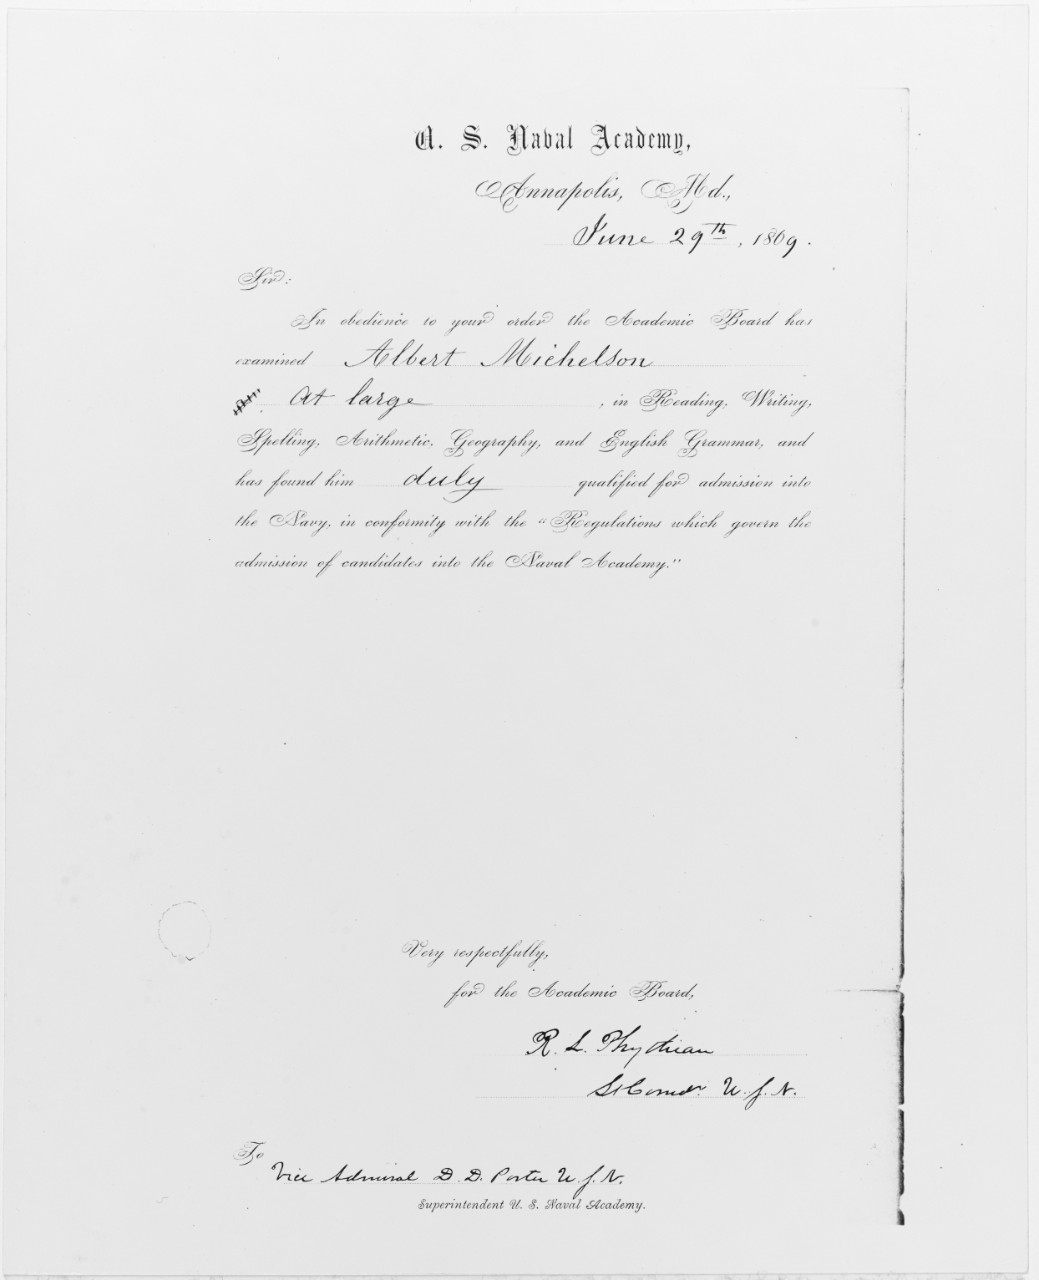 Michelson letter advising him of his qualifying to enter the Naval Academy